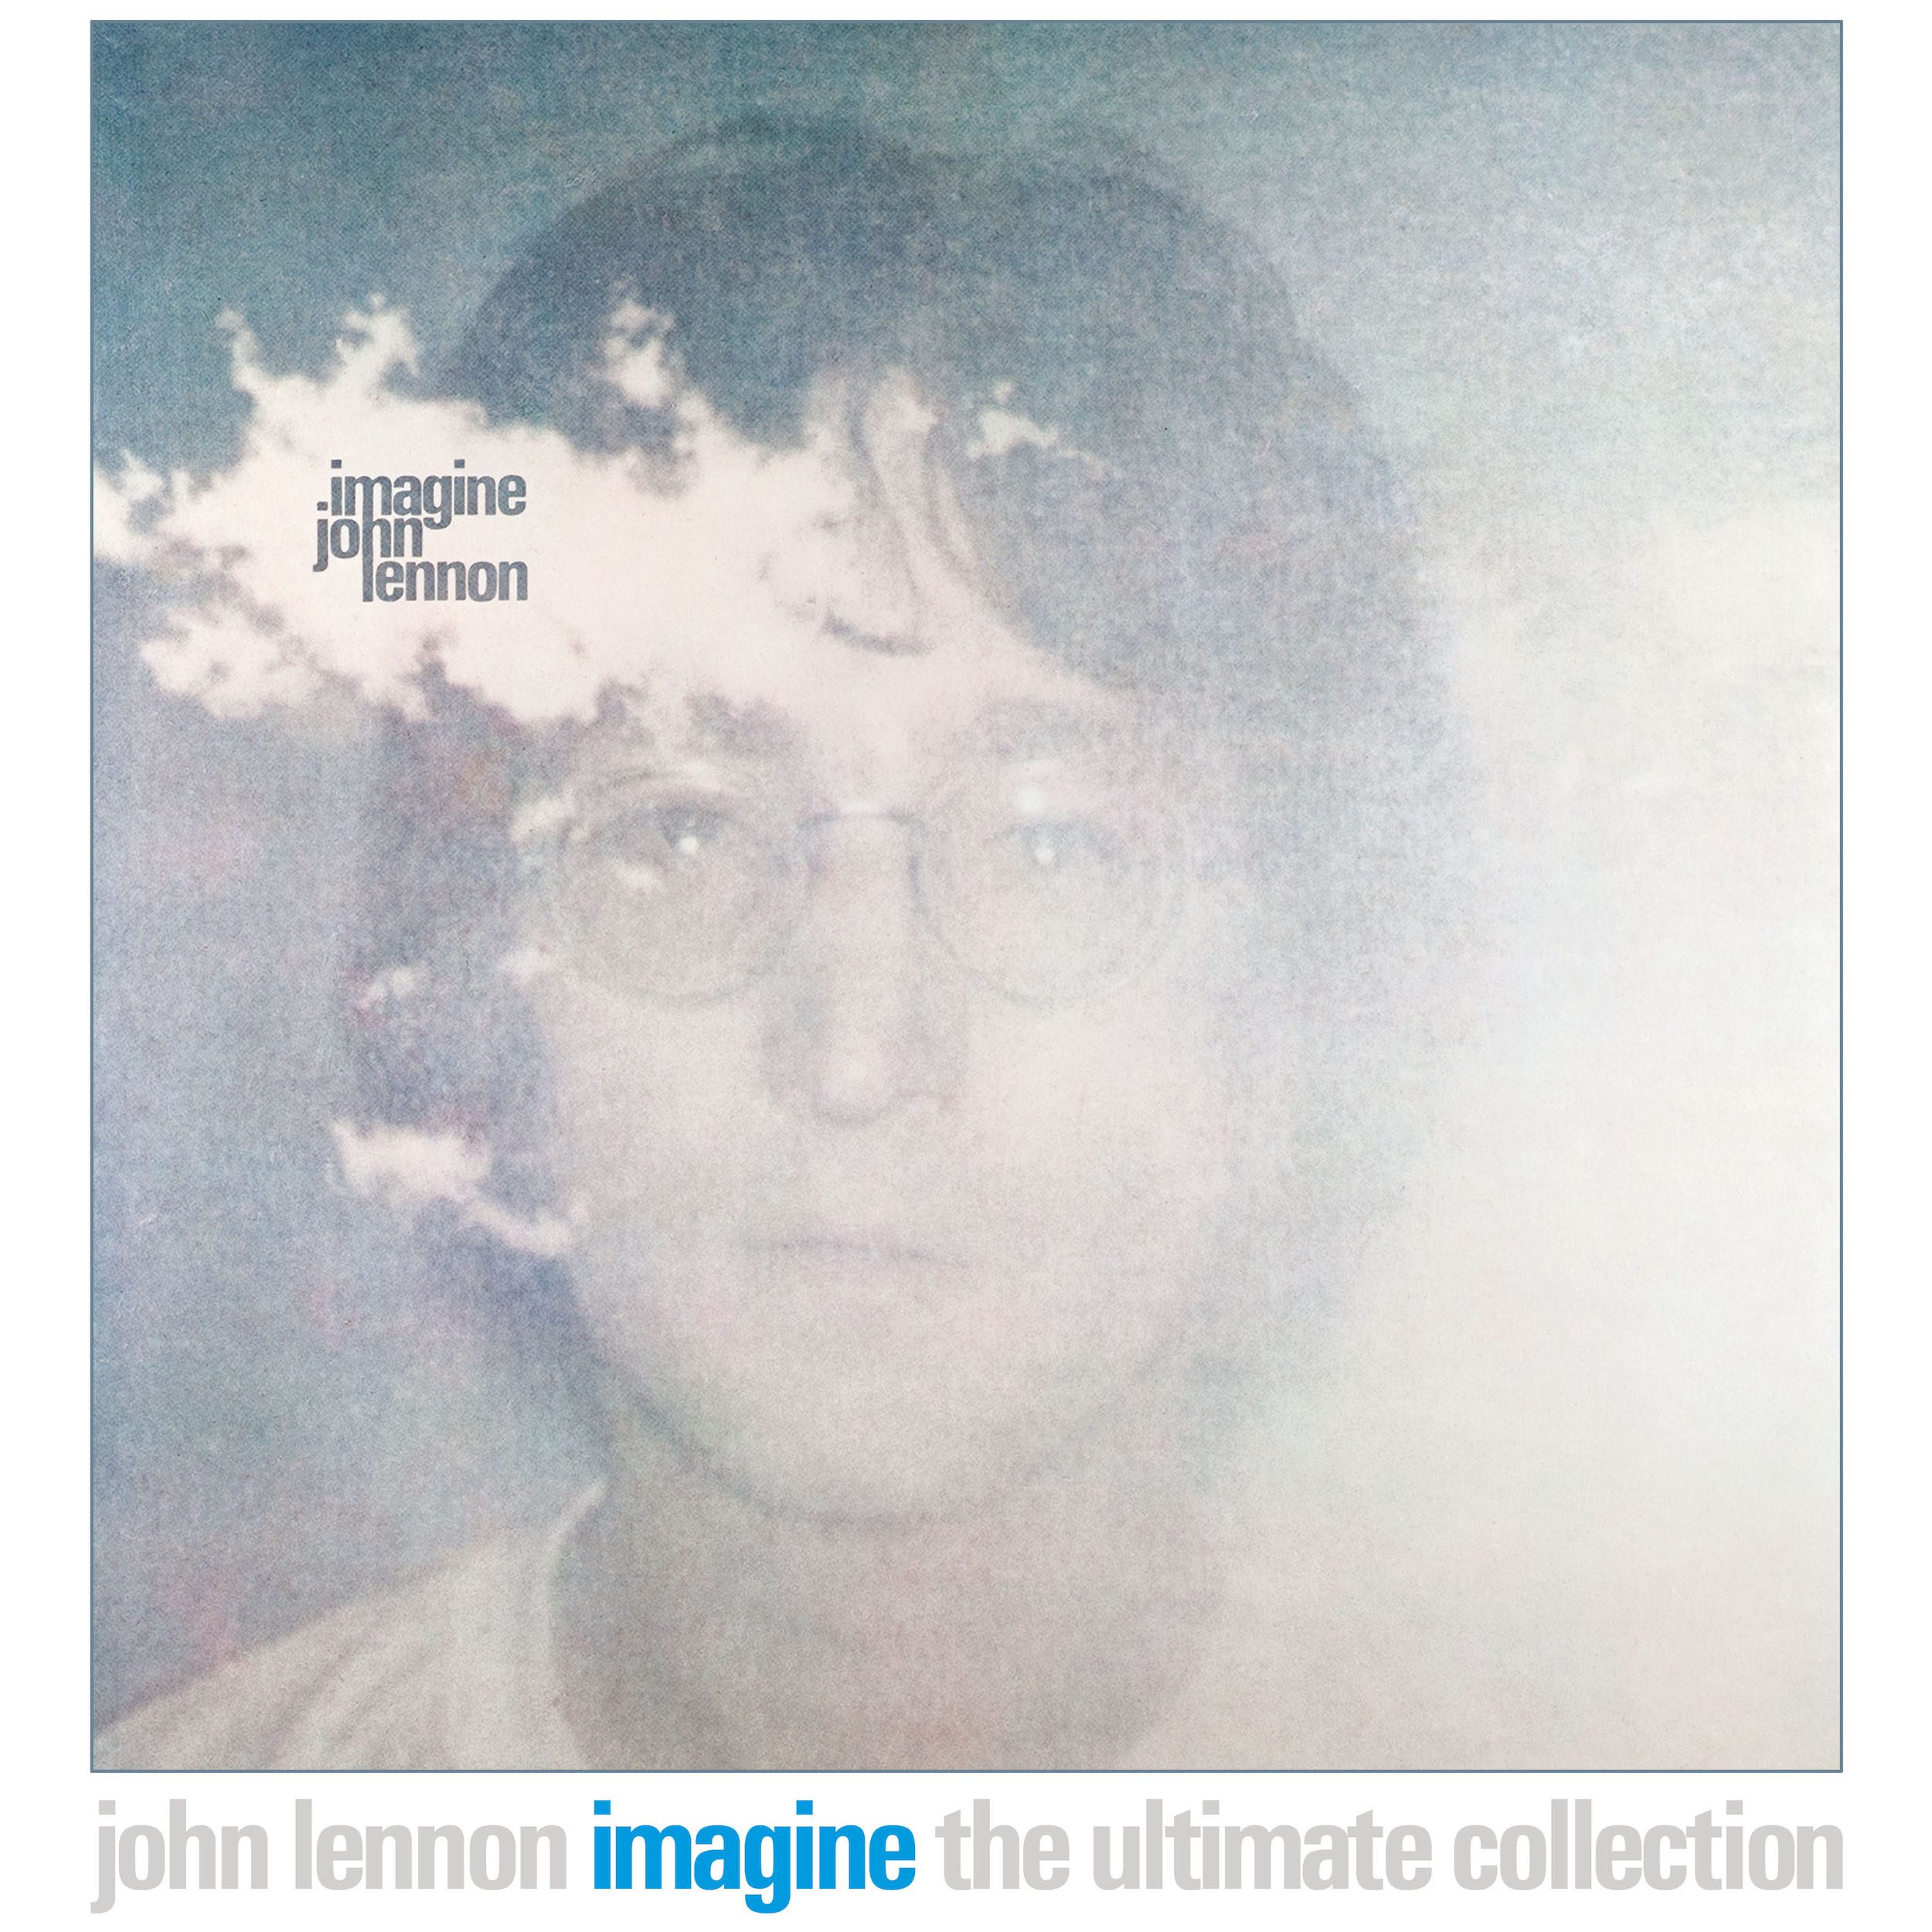 John Lennon\'s \'Imagine Ultimate Collection\': Review | Best Classic Bands